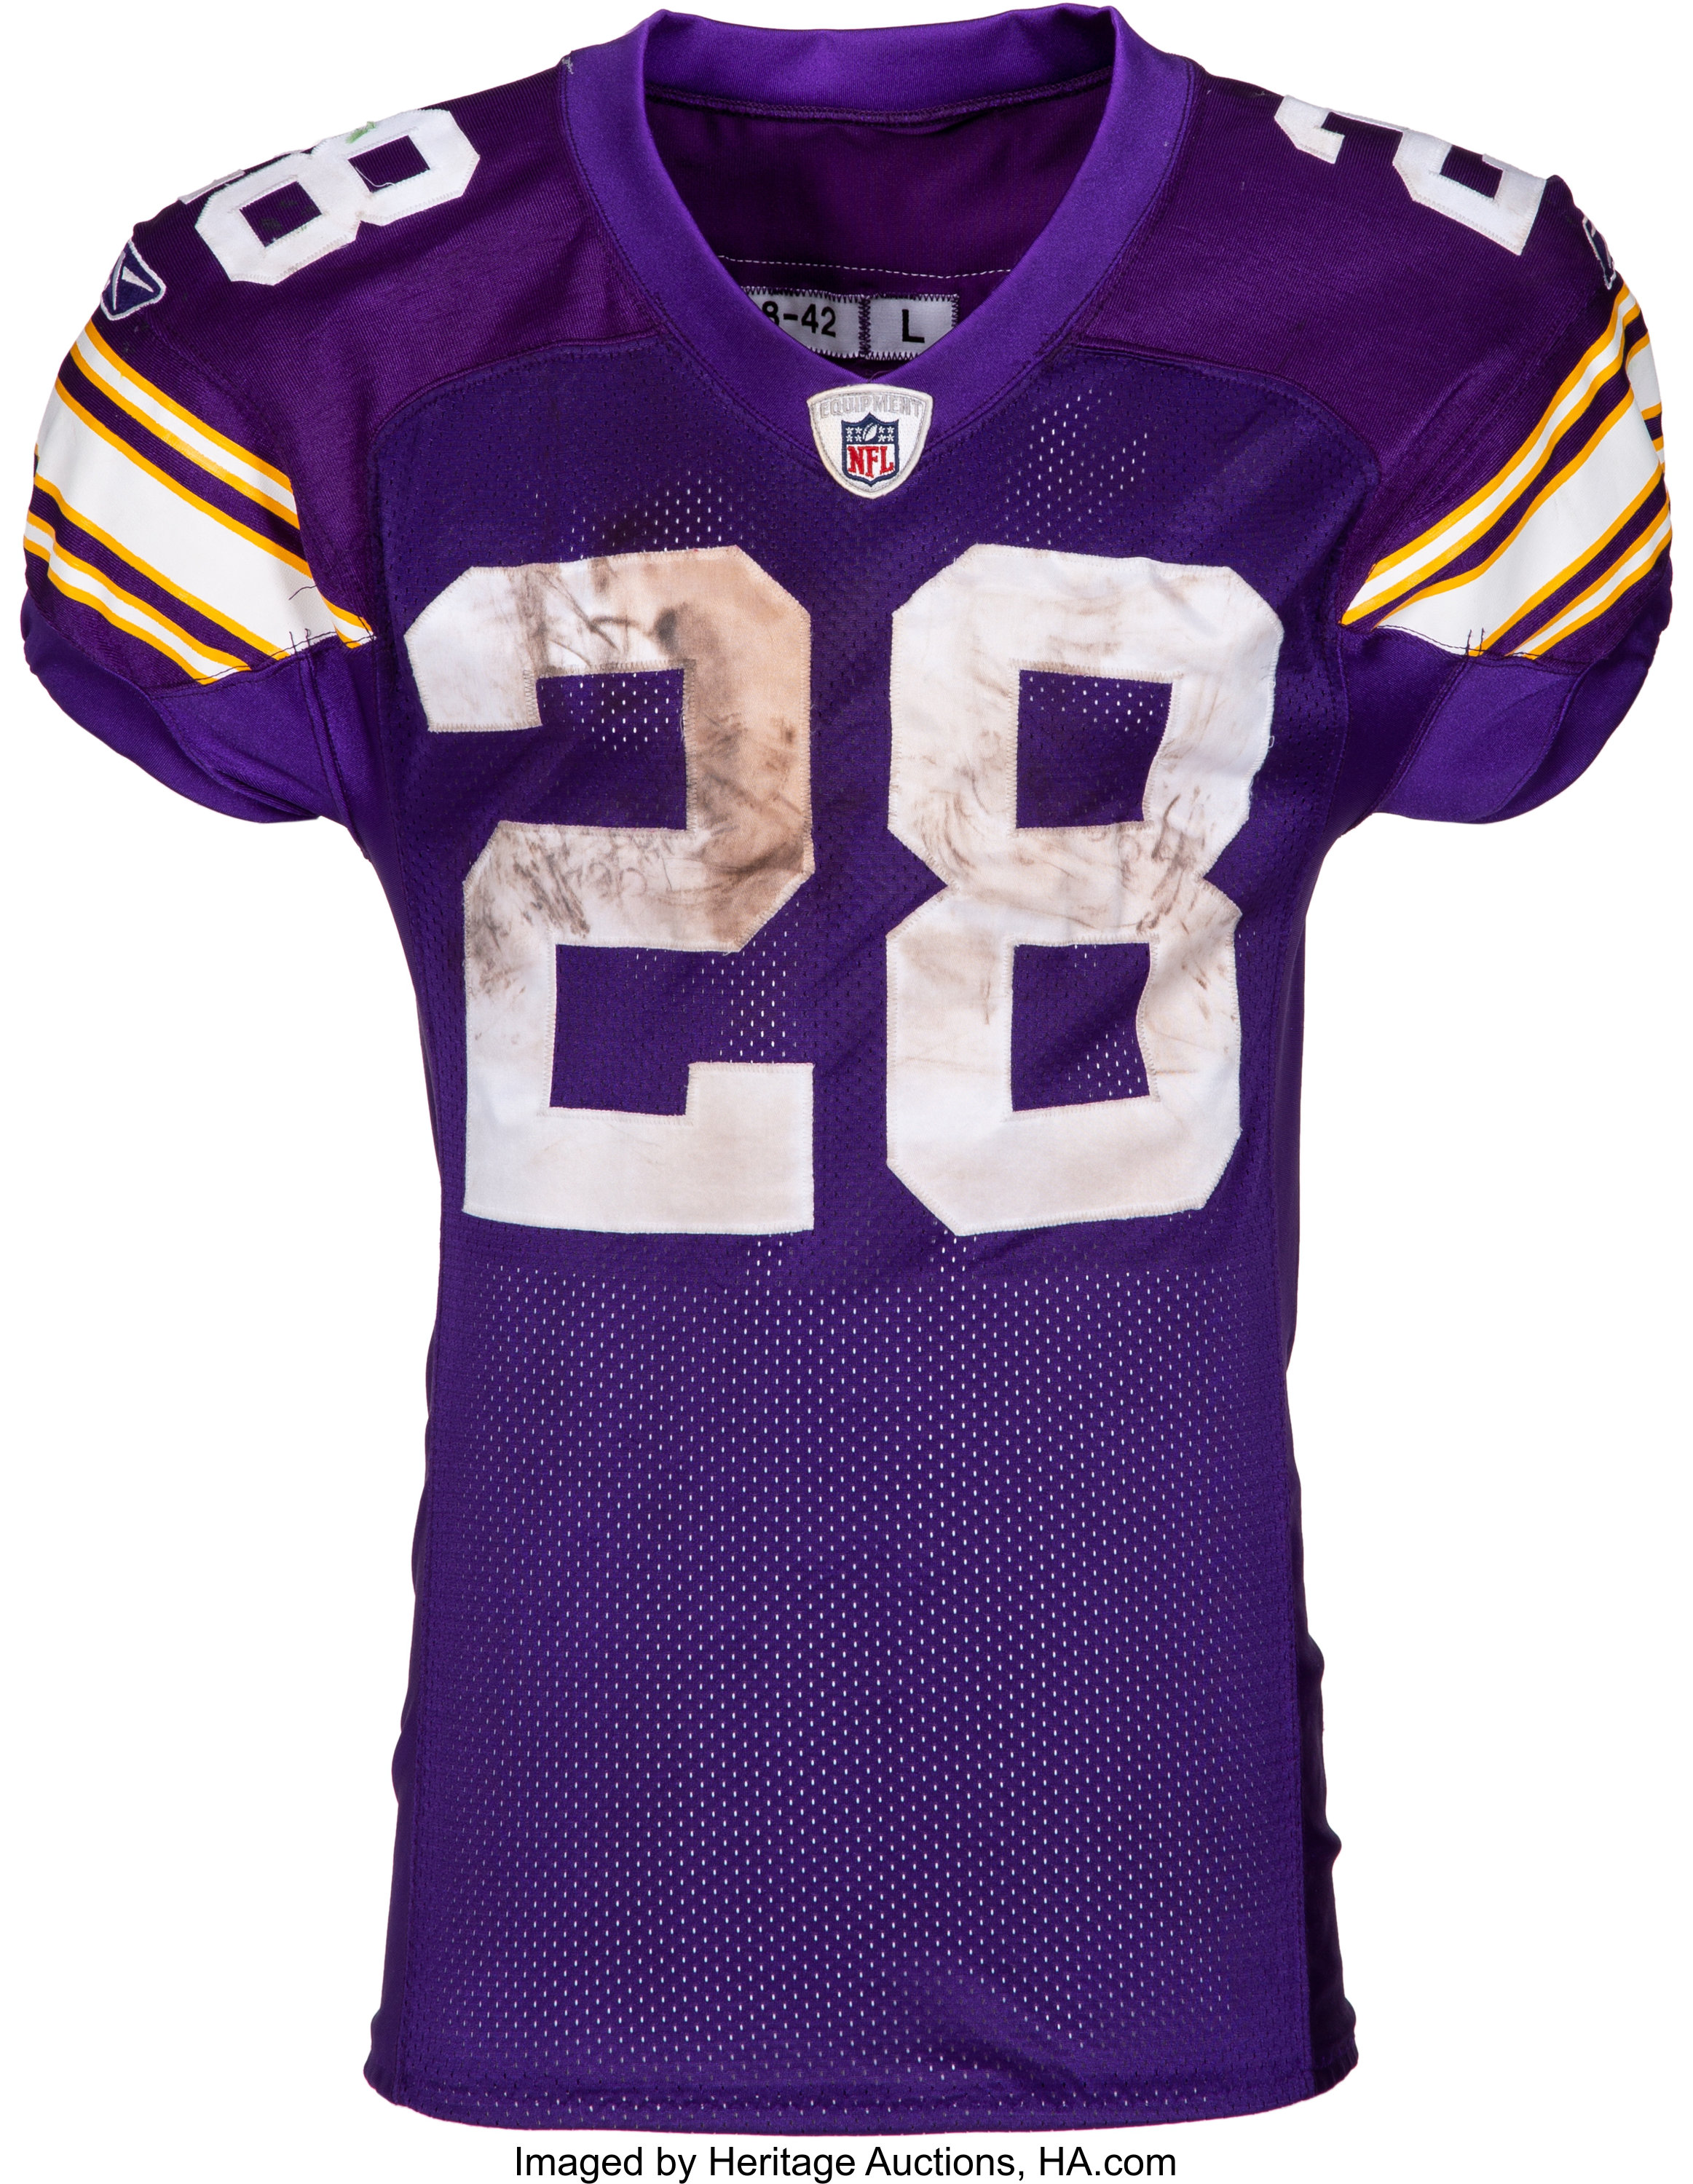 huge discount 02682 67162 2009 Adrian Peterson Game Worn, Unwashed Minnesota Vikings Jersey -   Lot  #53082   Heritage Auctions